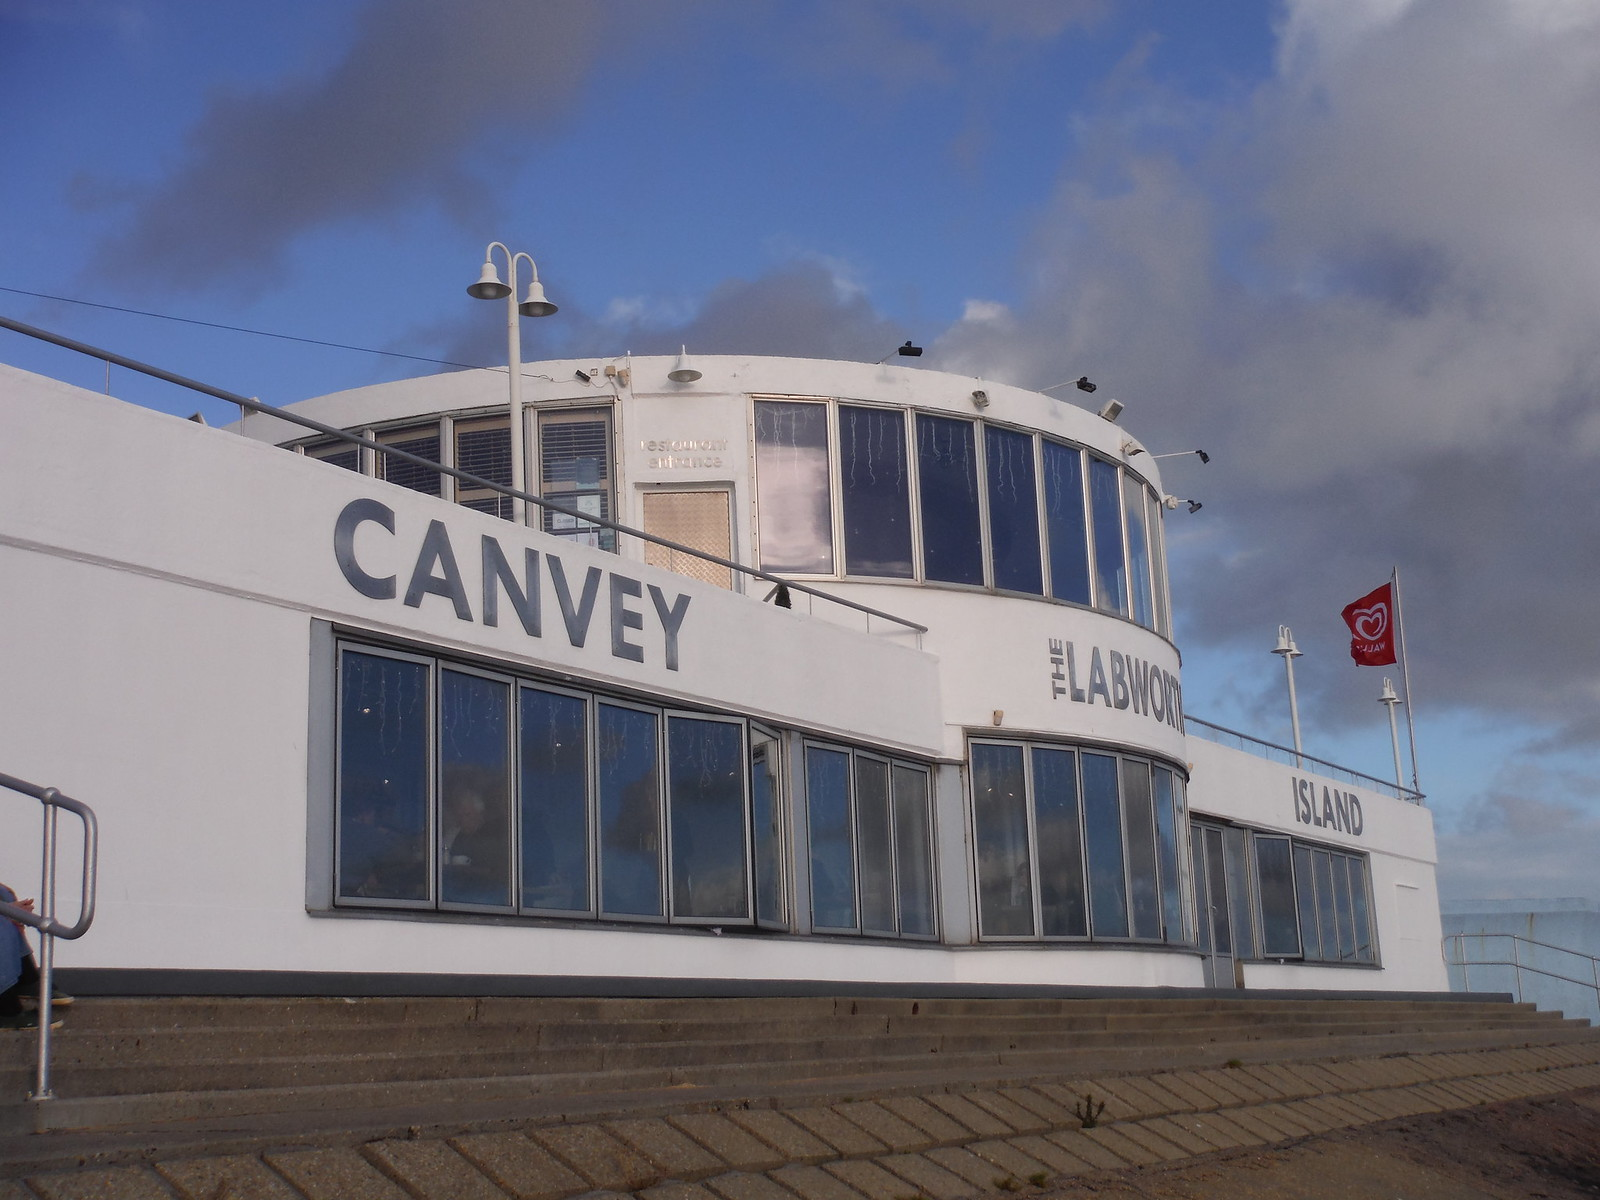 The Labworth Restaurant and Beach Bistro (viewed from the west), Canvey Island SWC Walk 258 Benfleet Circular (via Canvey Island)